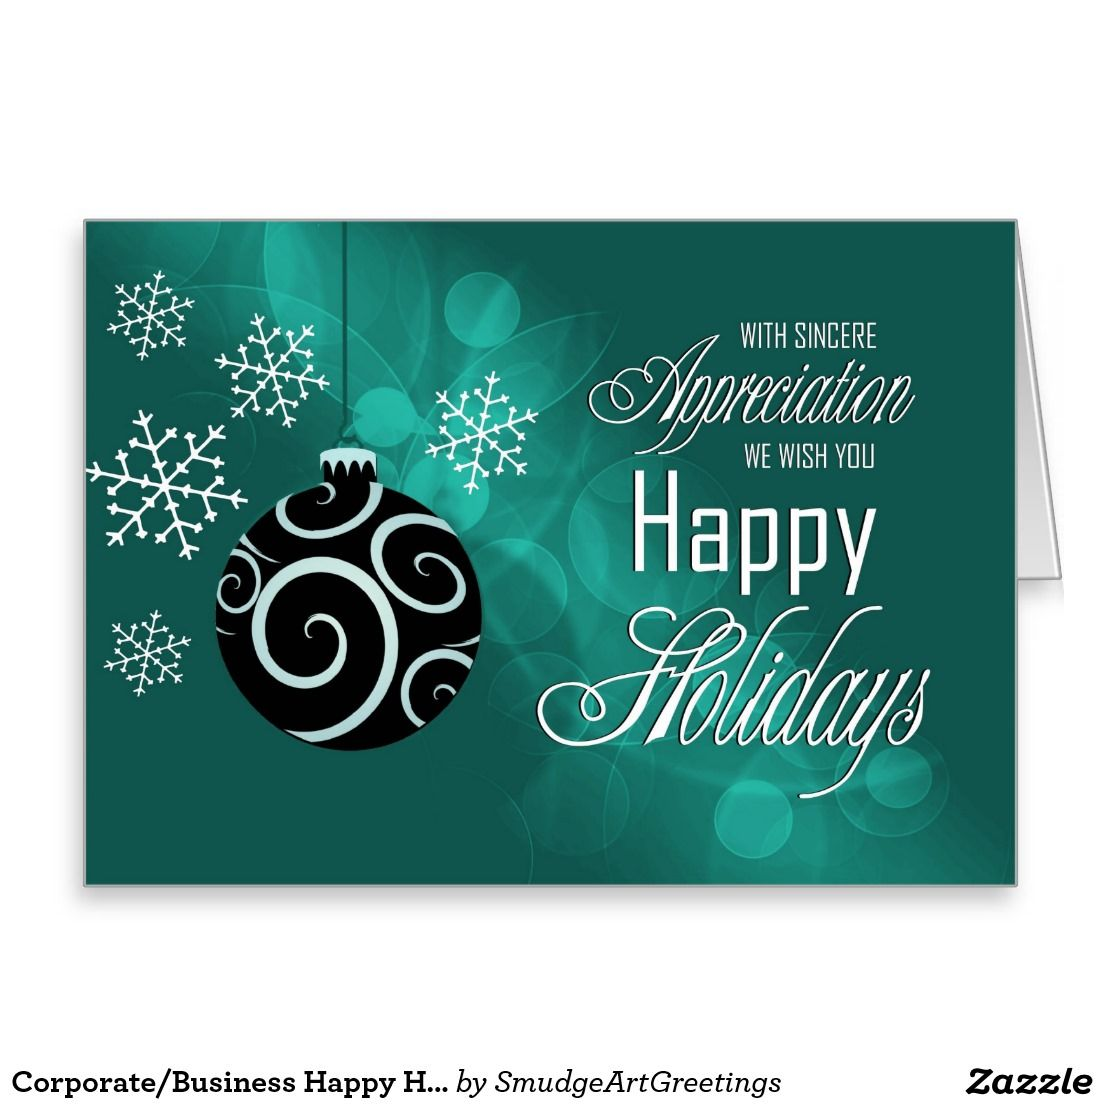 Corporatebusiness Happy Holidays Emerald Green Holiday Card